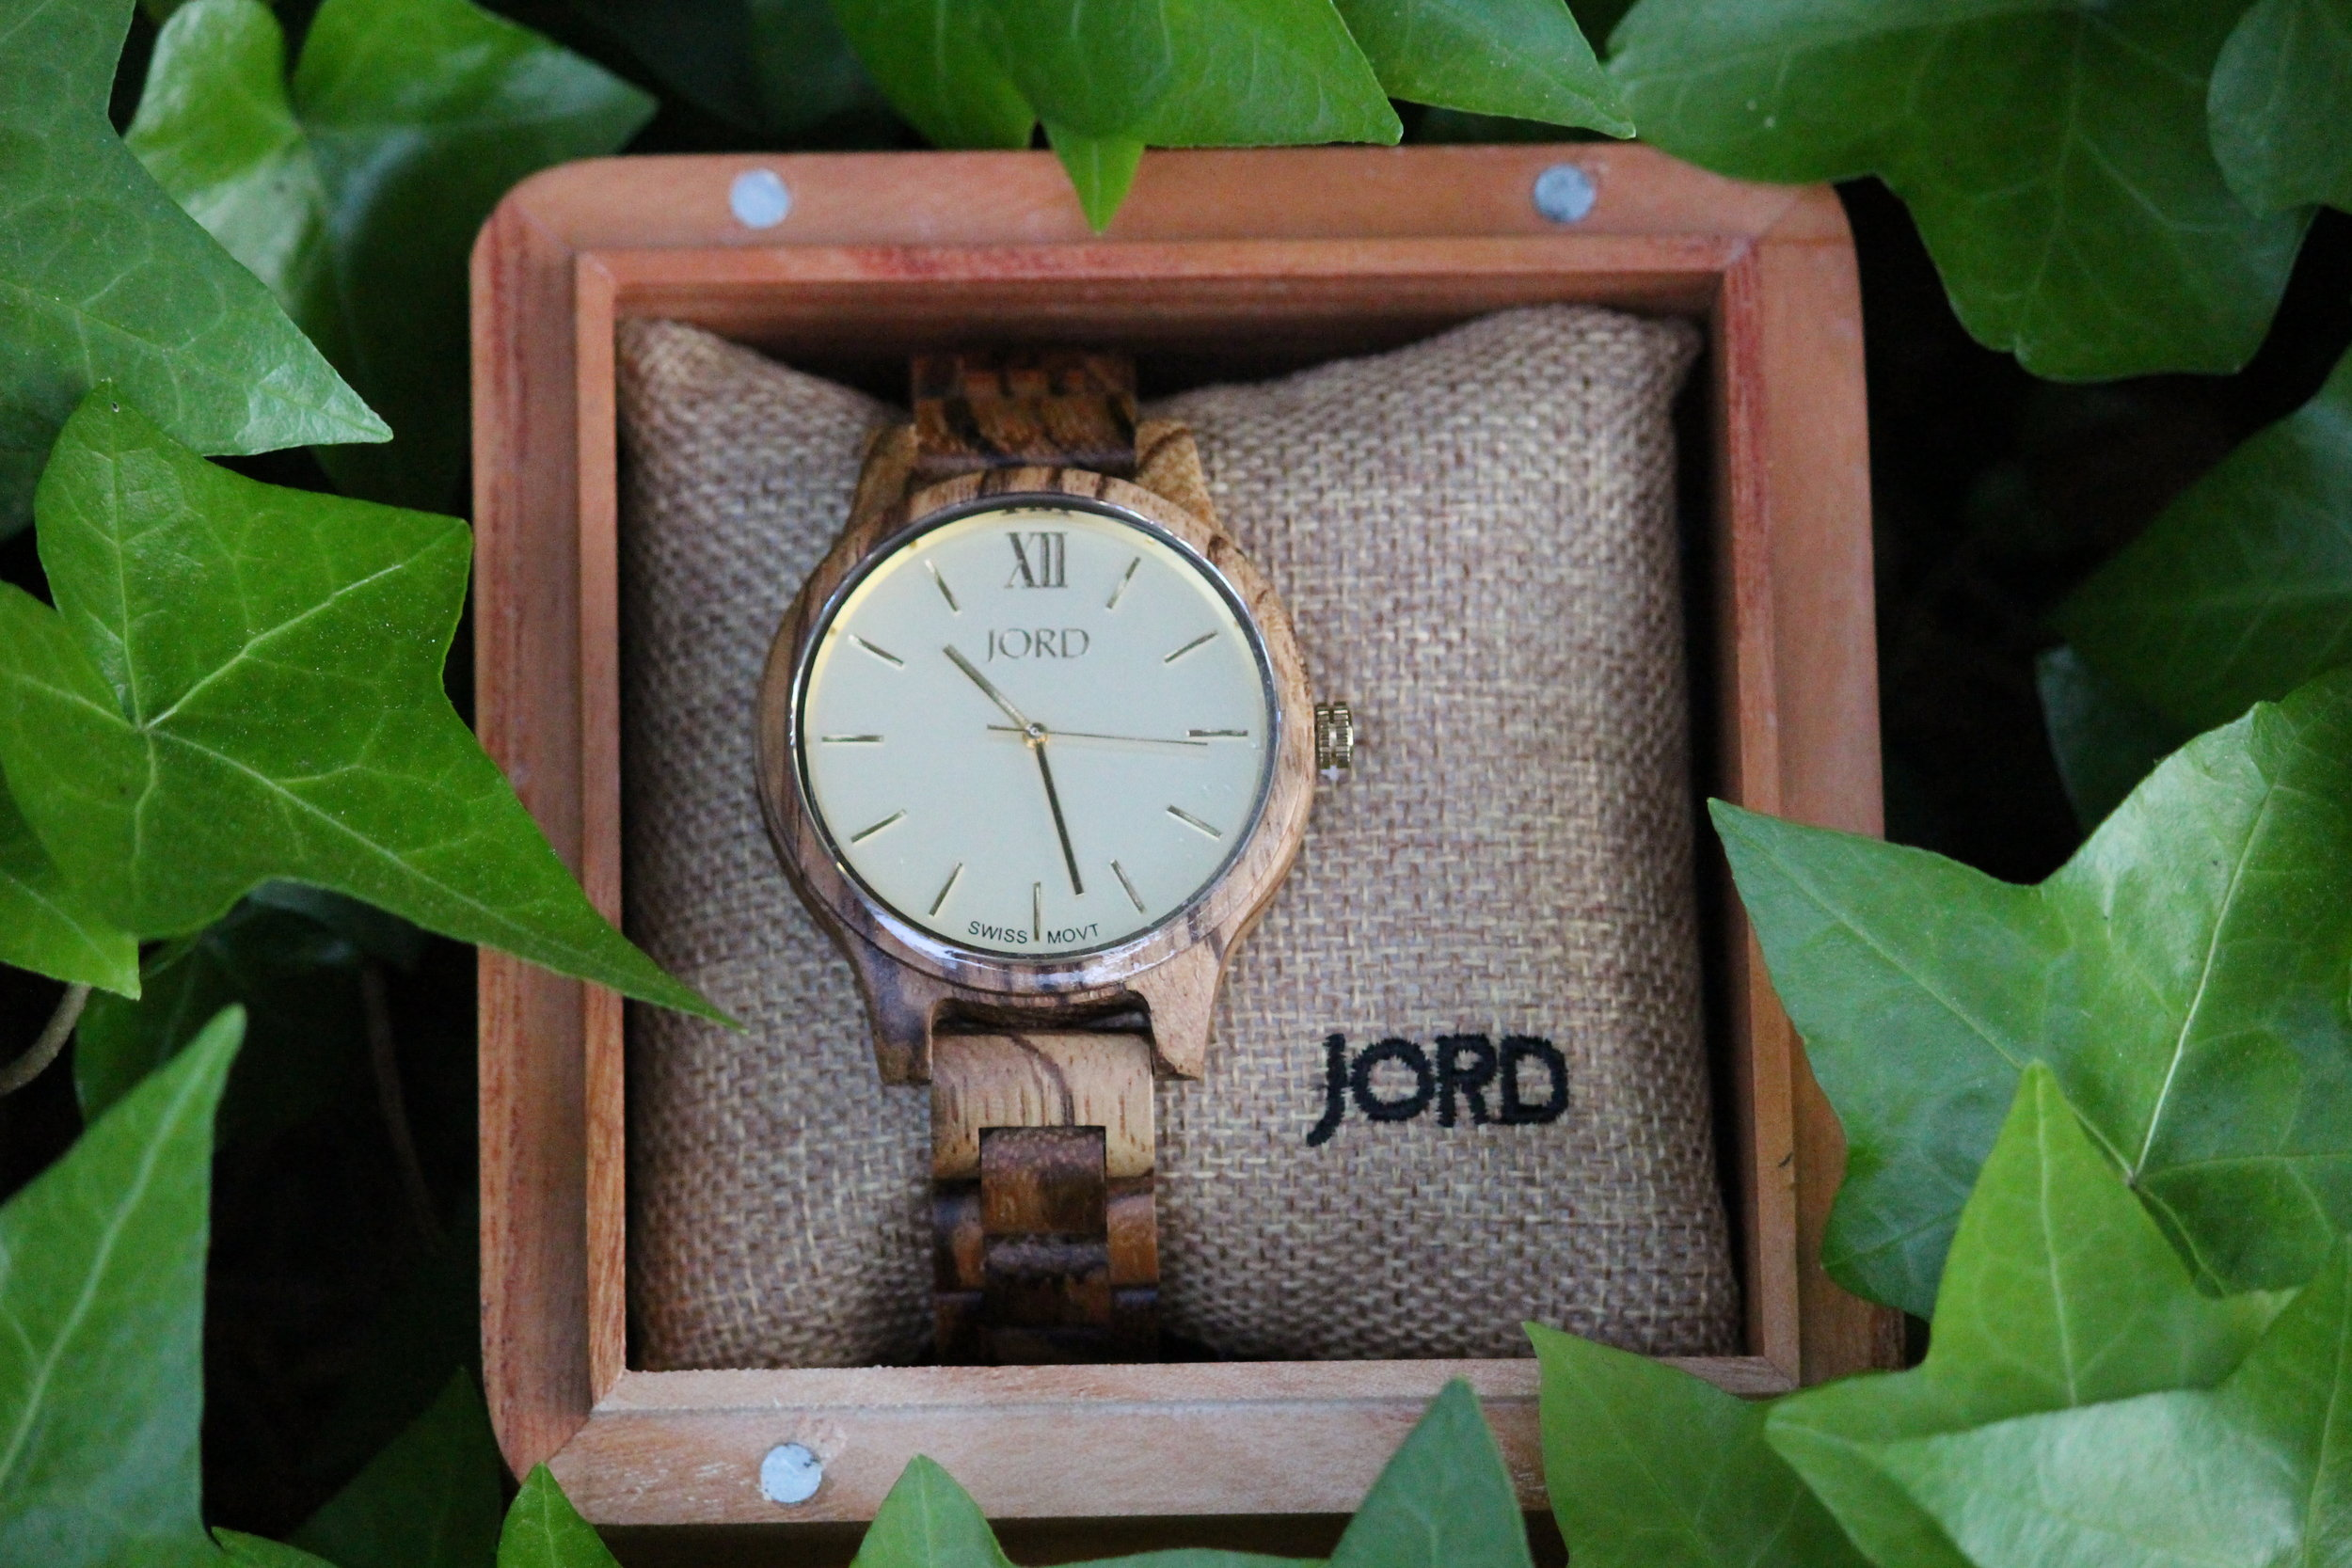 Jord watch_cool watch